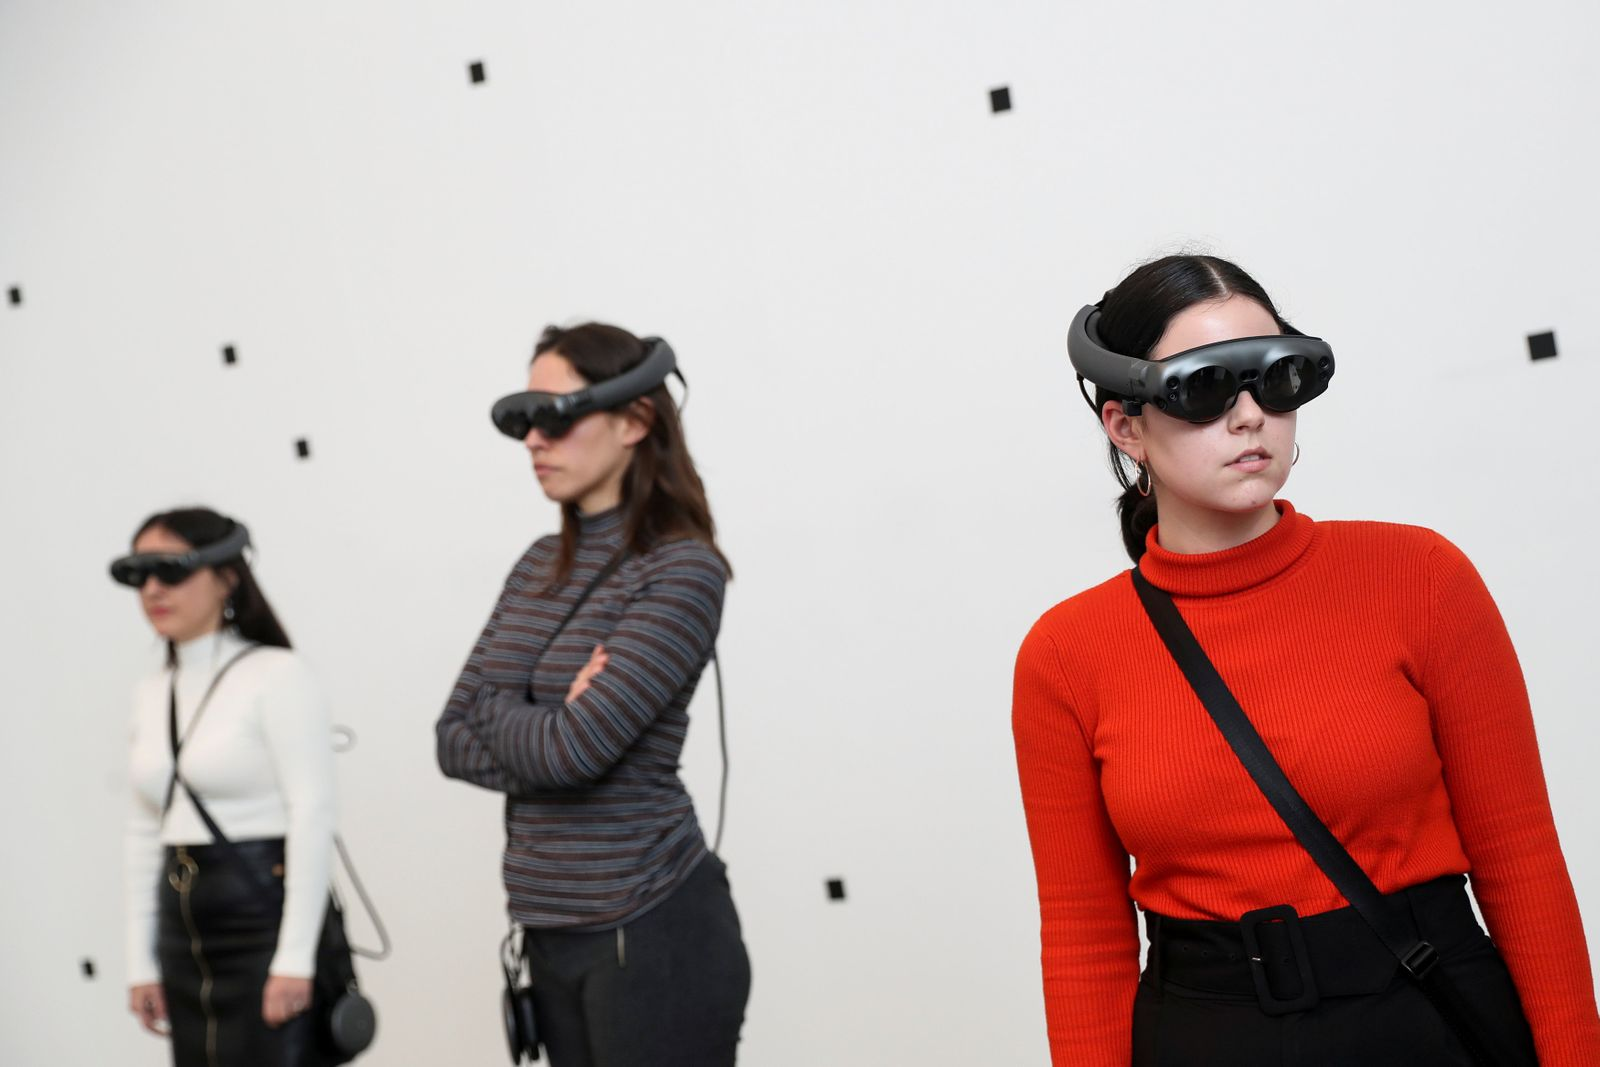 Attendees look through augmented reality glasses at Marina Abramovic's exhibition 'The Life', the world's first large-scale performance exhibited using Mixed Reality at the Serpentine Gallery in London